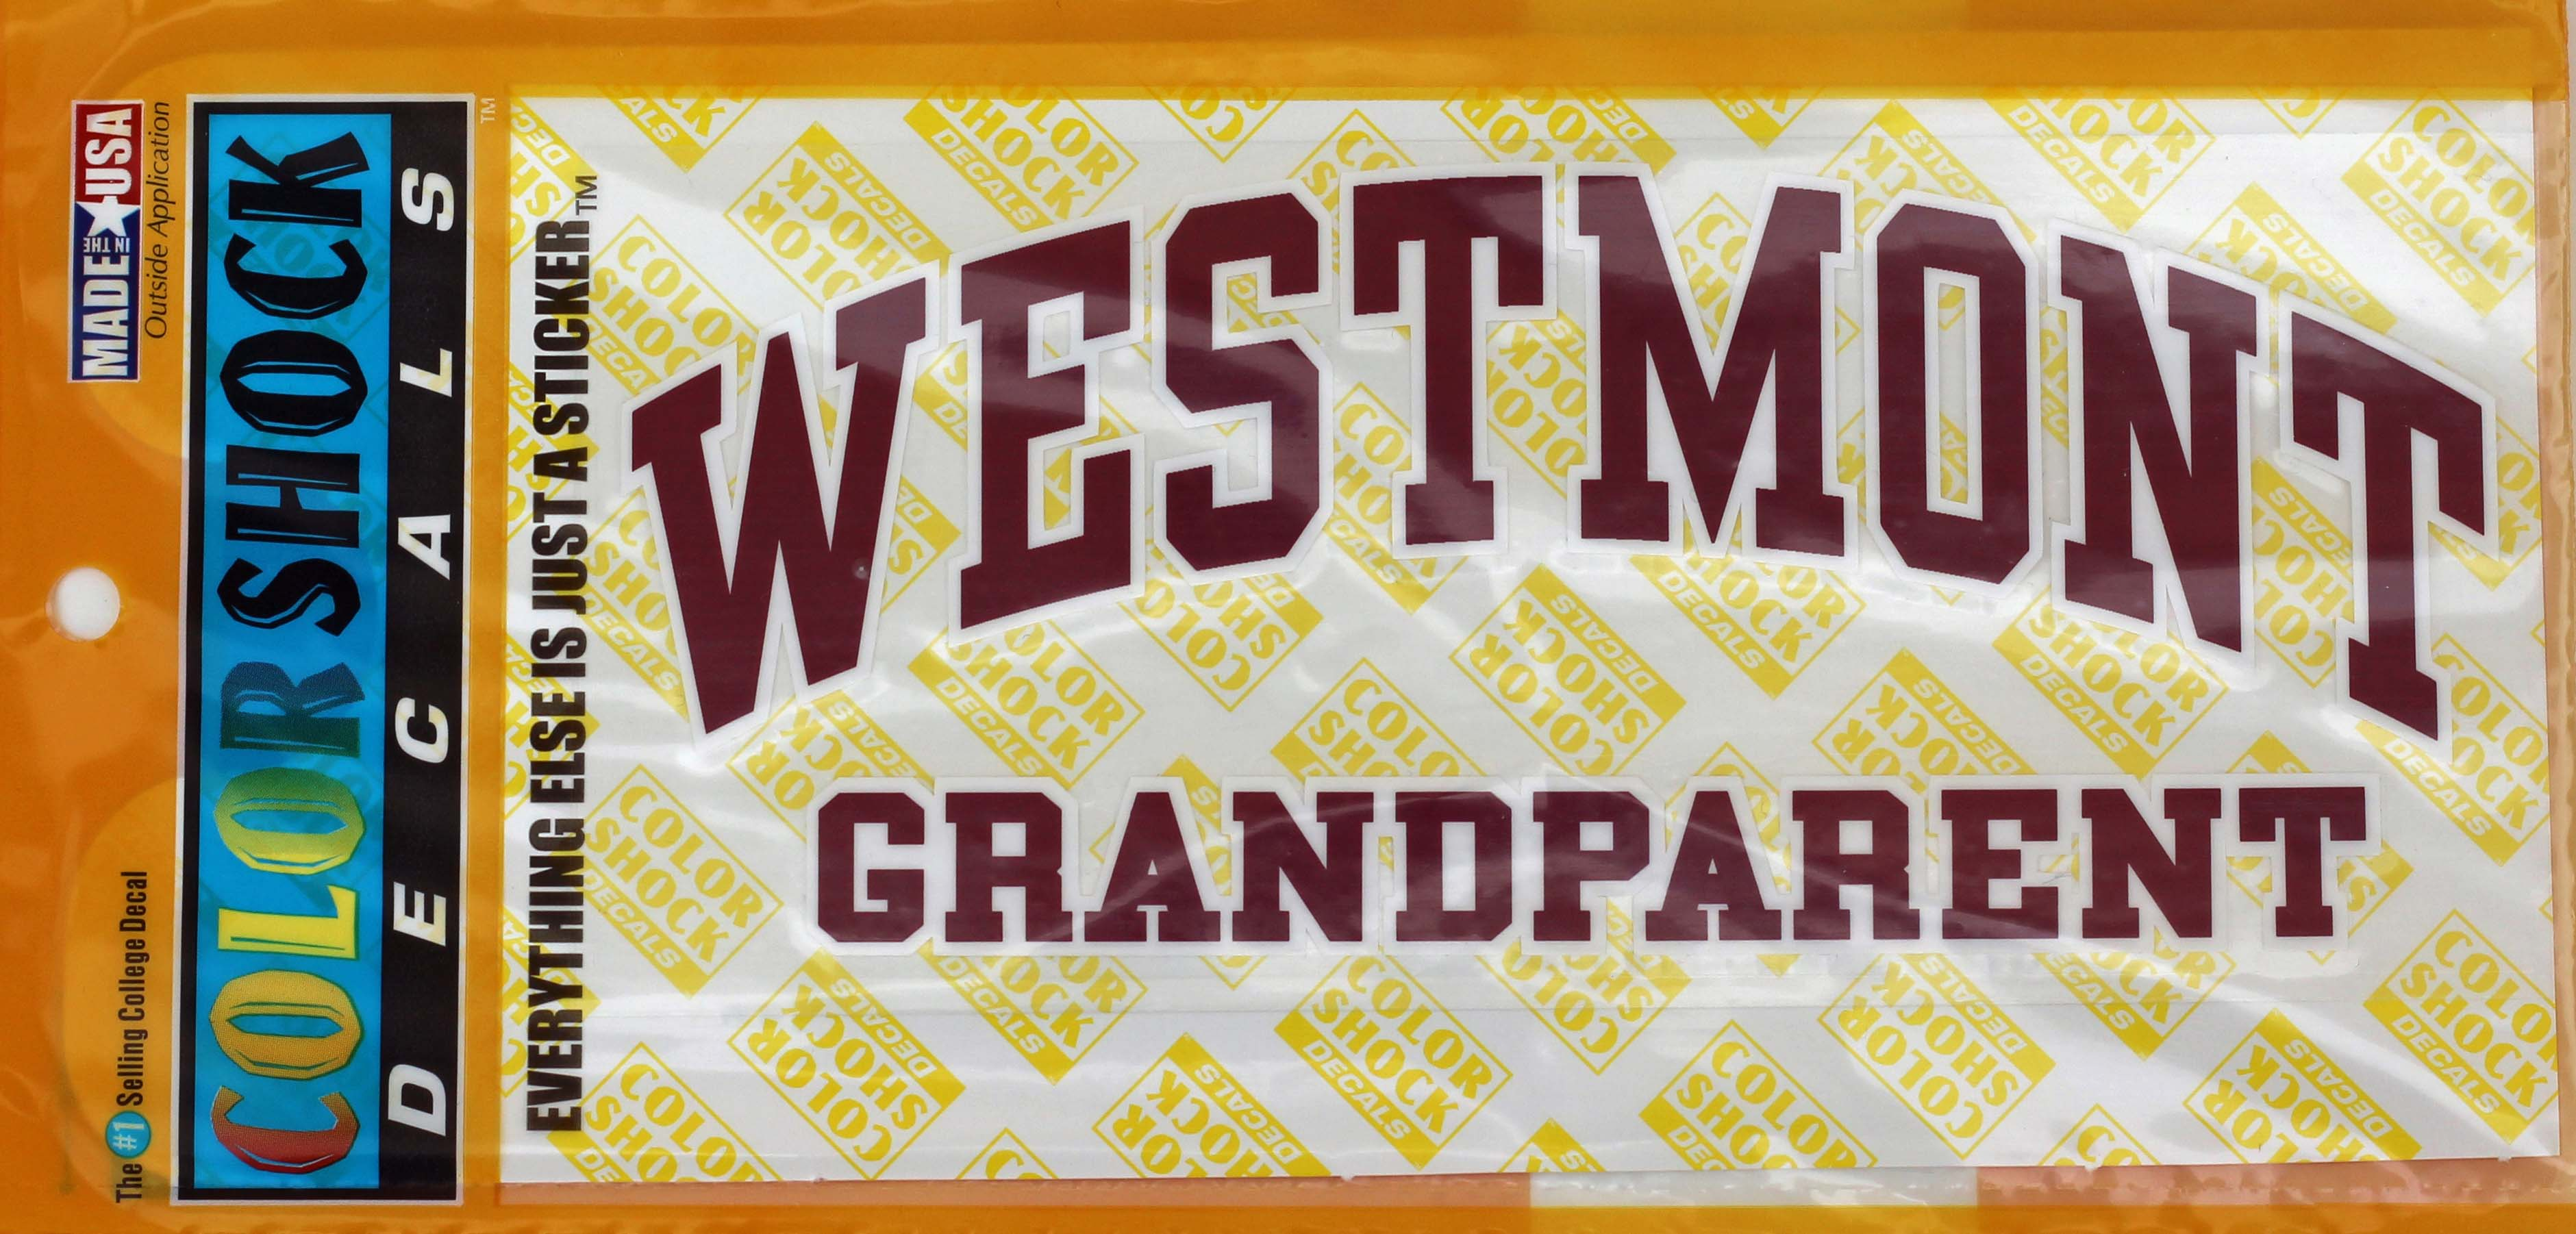 Image for the Color Shock Grandparent Decal product